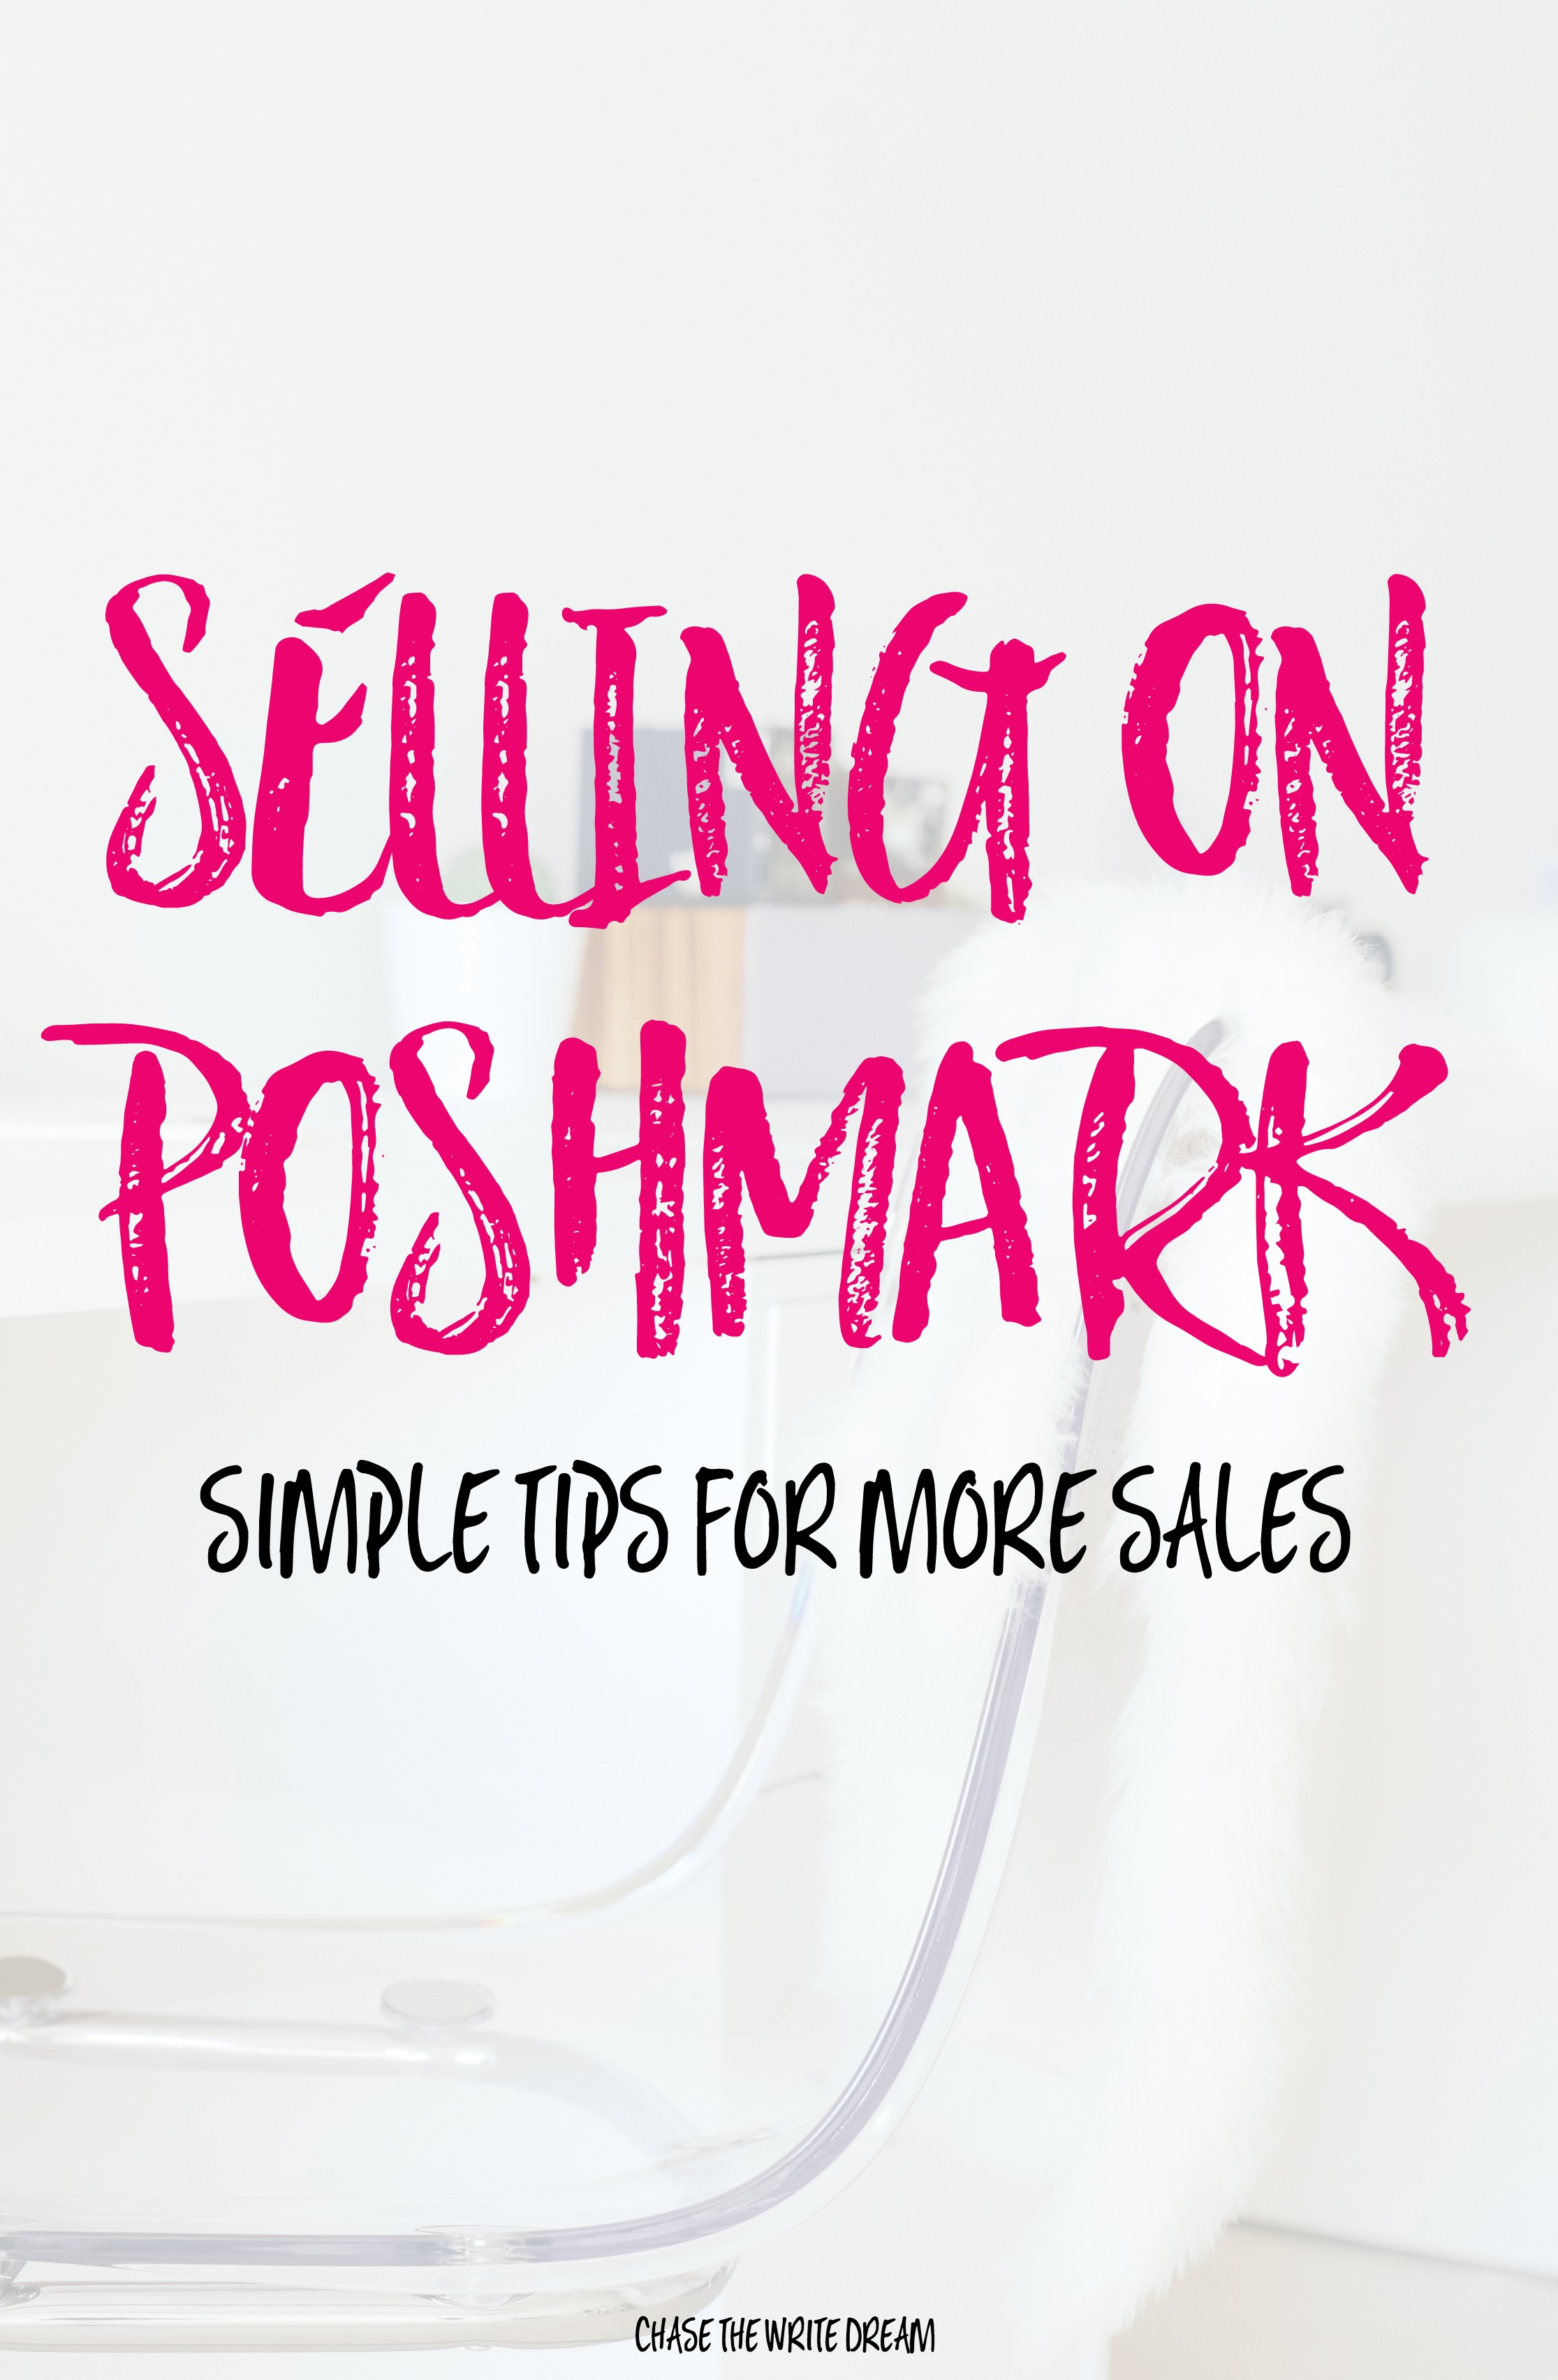 0517b6b80a7 Selling on Poshmark  Simple Tips for More Sales. Looking to make money  online with